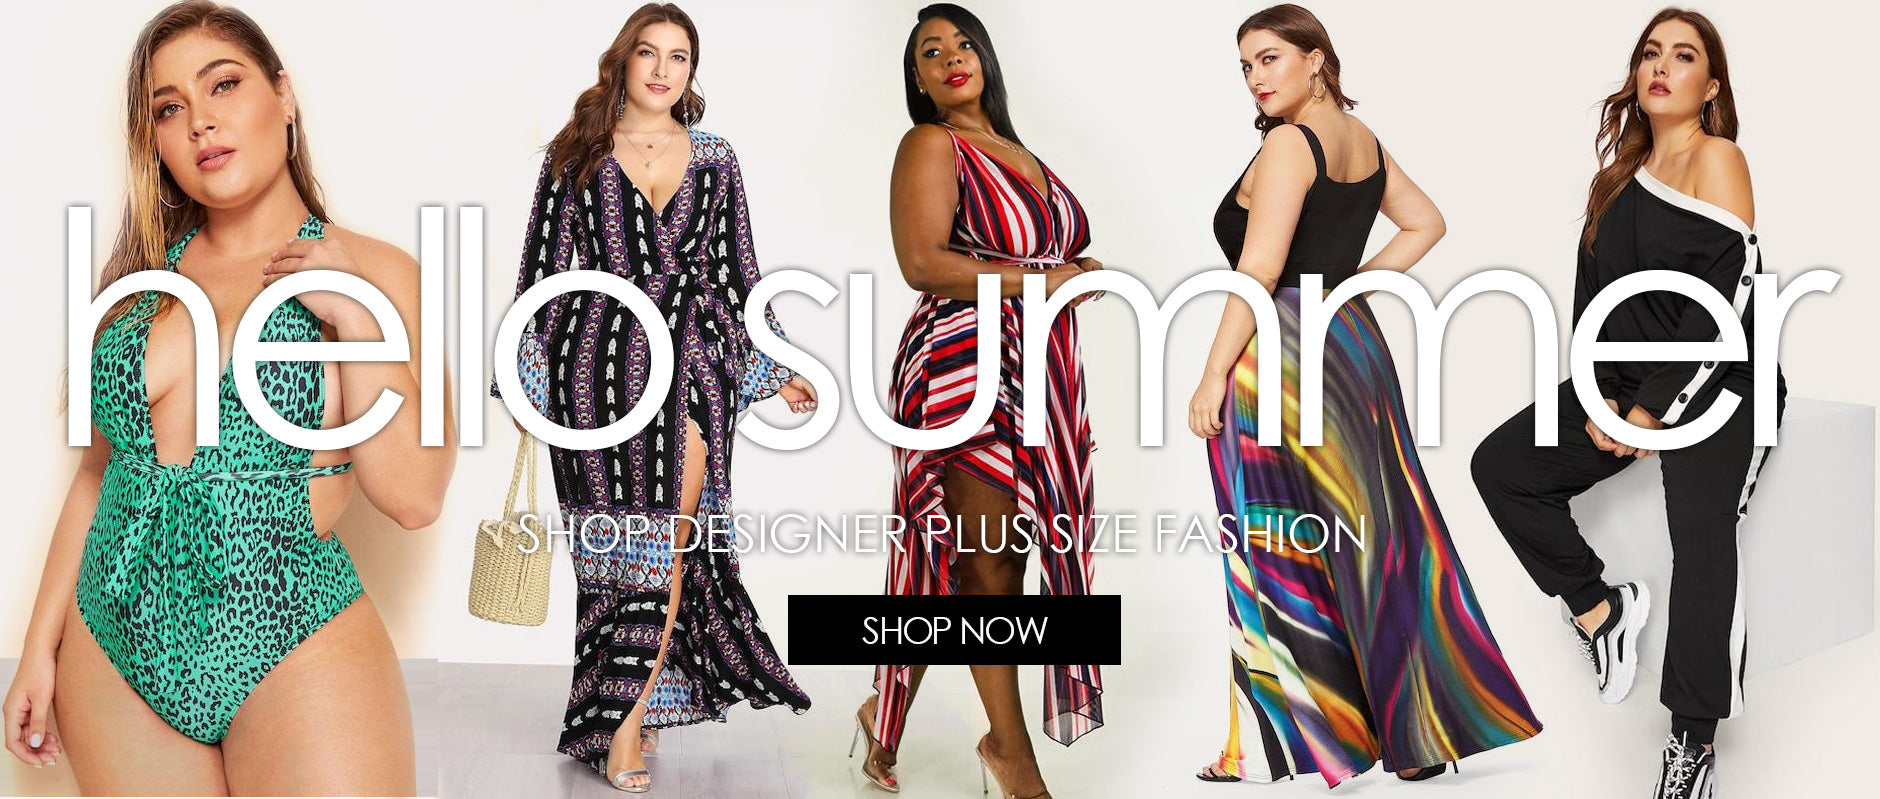 0567257a57bf Welcome to Plussizefix - Shop Plus Size Clothing, Clubwear and more!